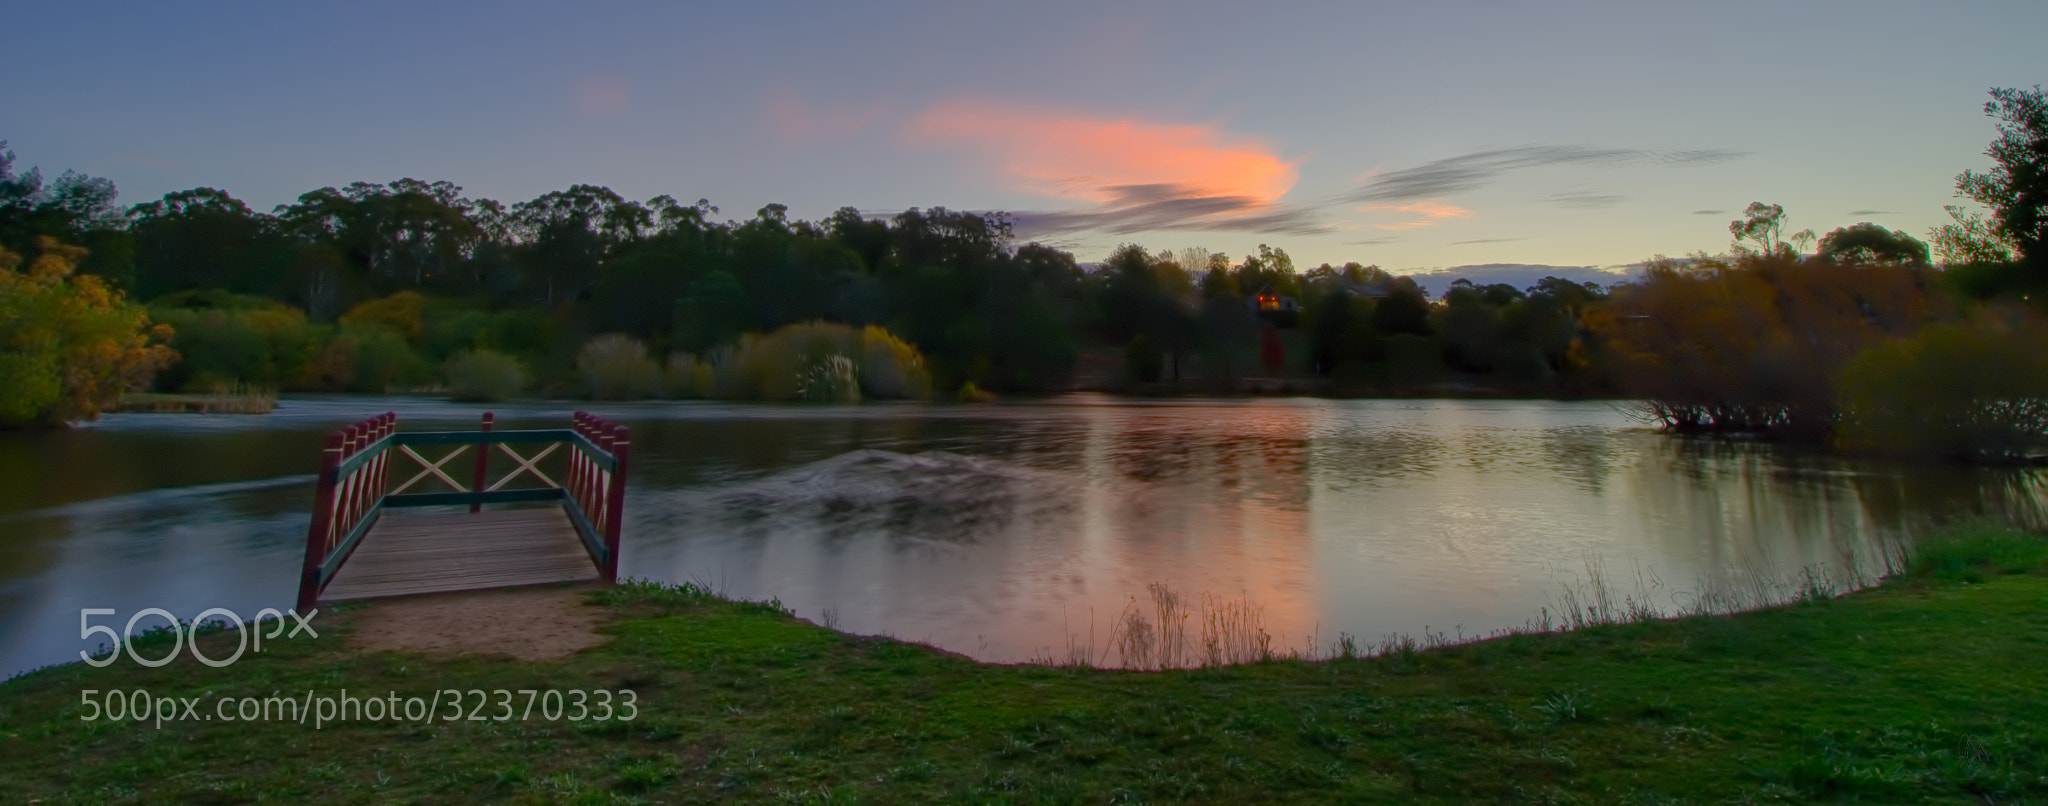 Photograph Sunset over the Lake by Pieter Pretorius on 500px